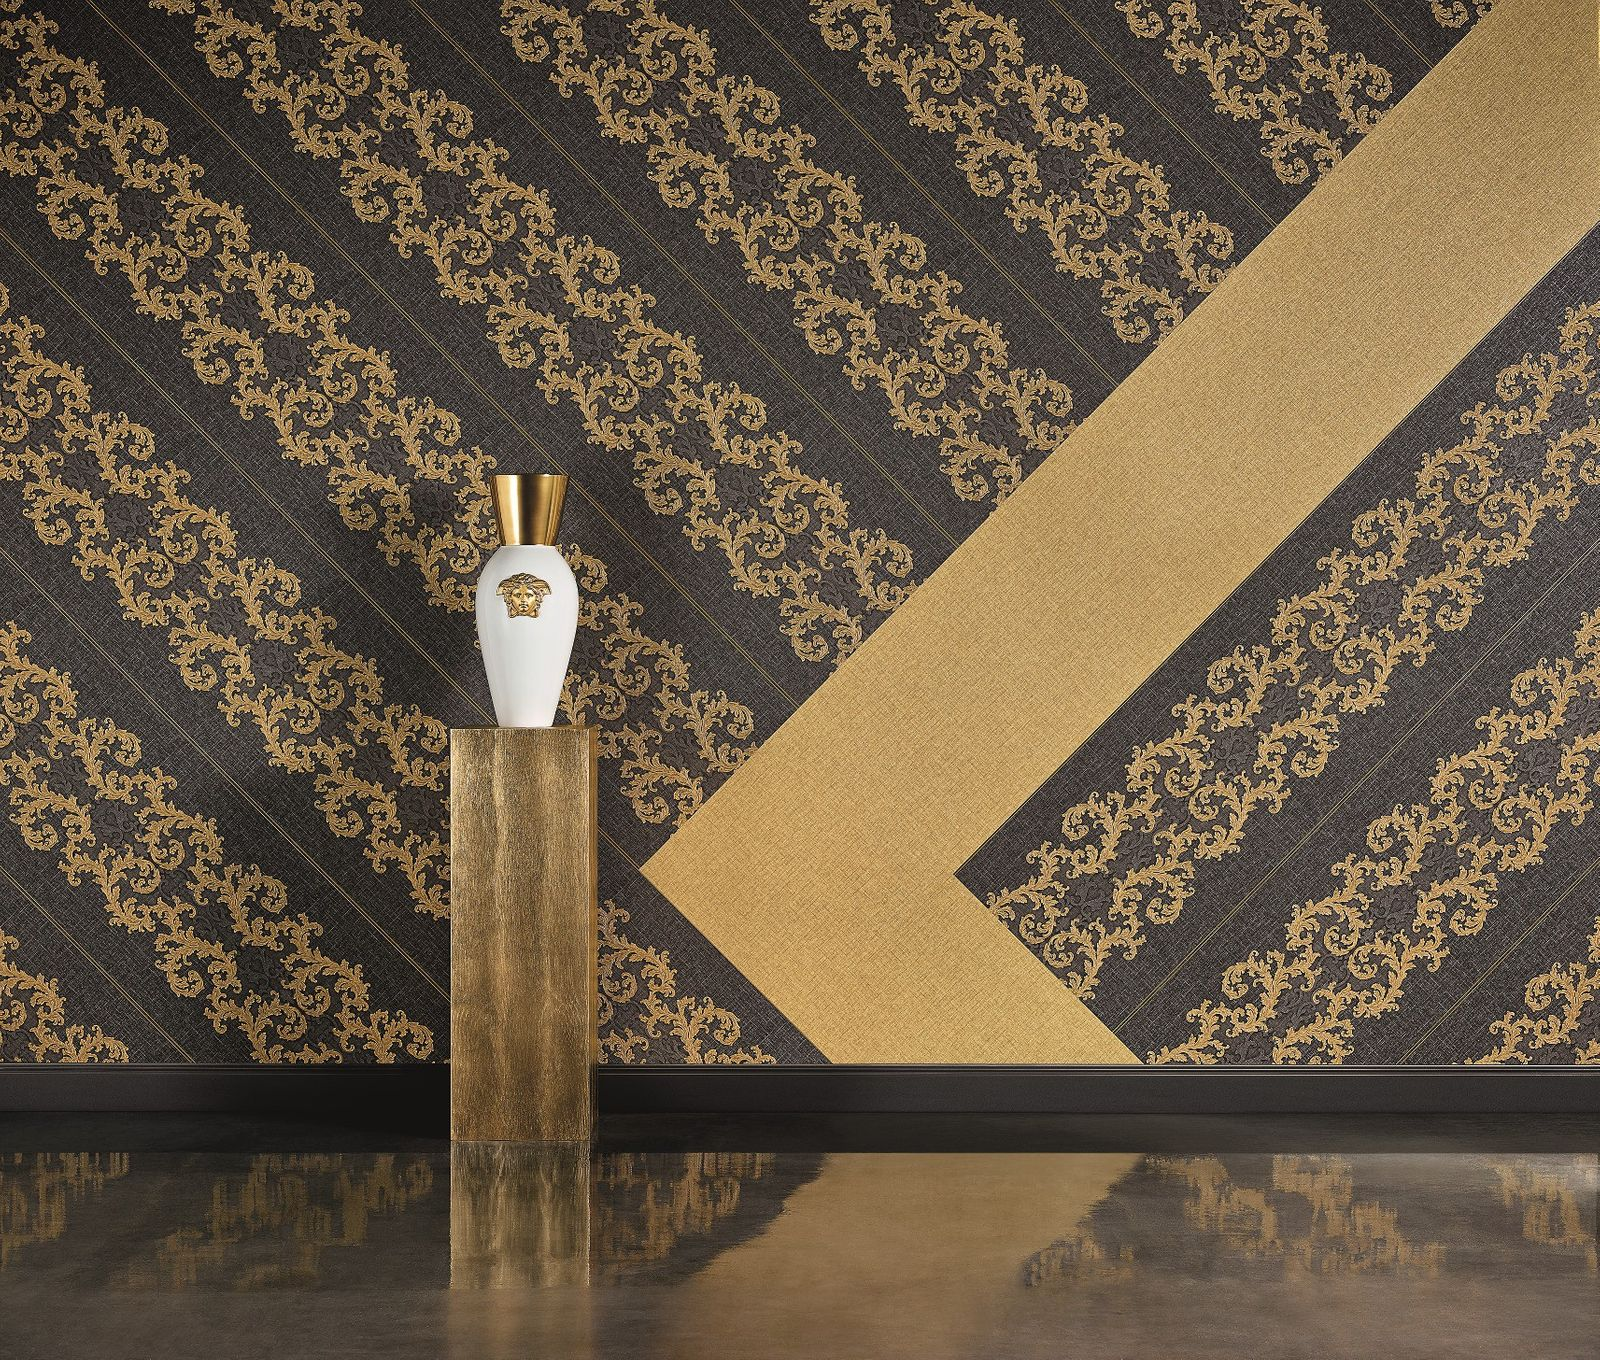 versace home wallpaper linen gold gloss 96233 4. Black Bedroom Furniture Sets. Home Design Ideas